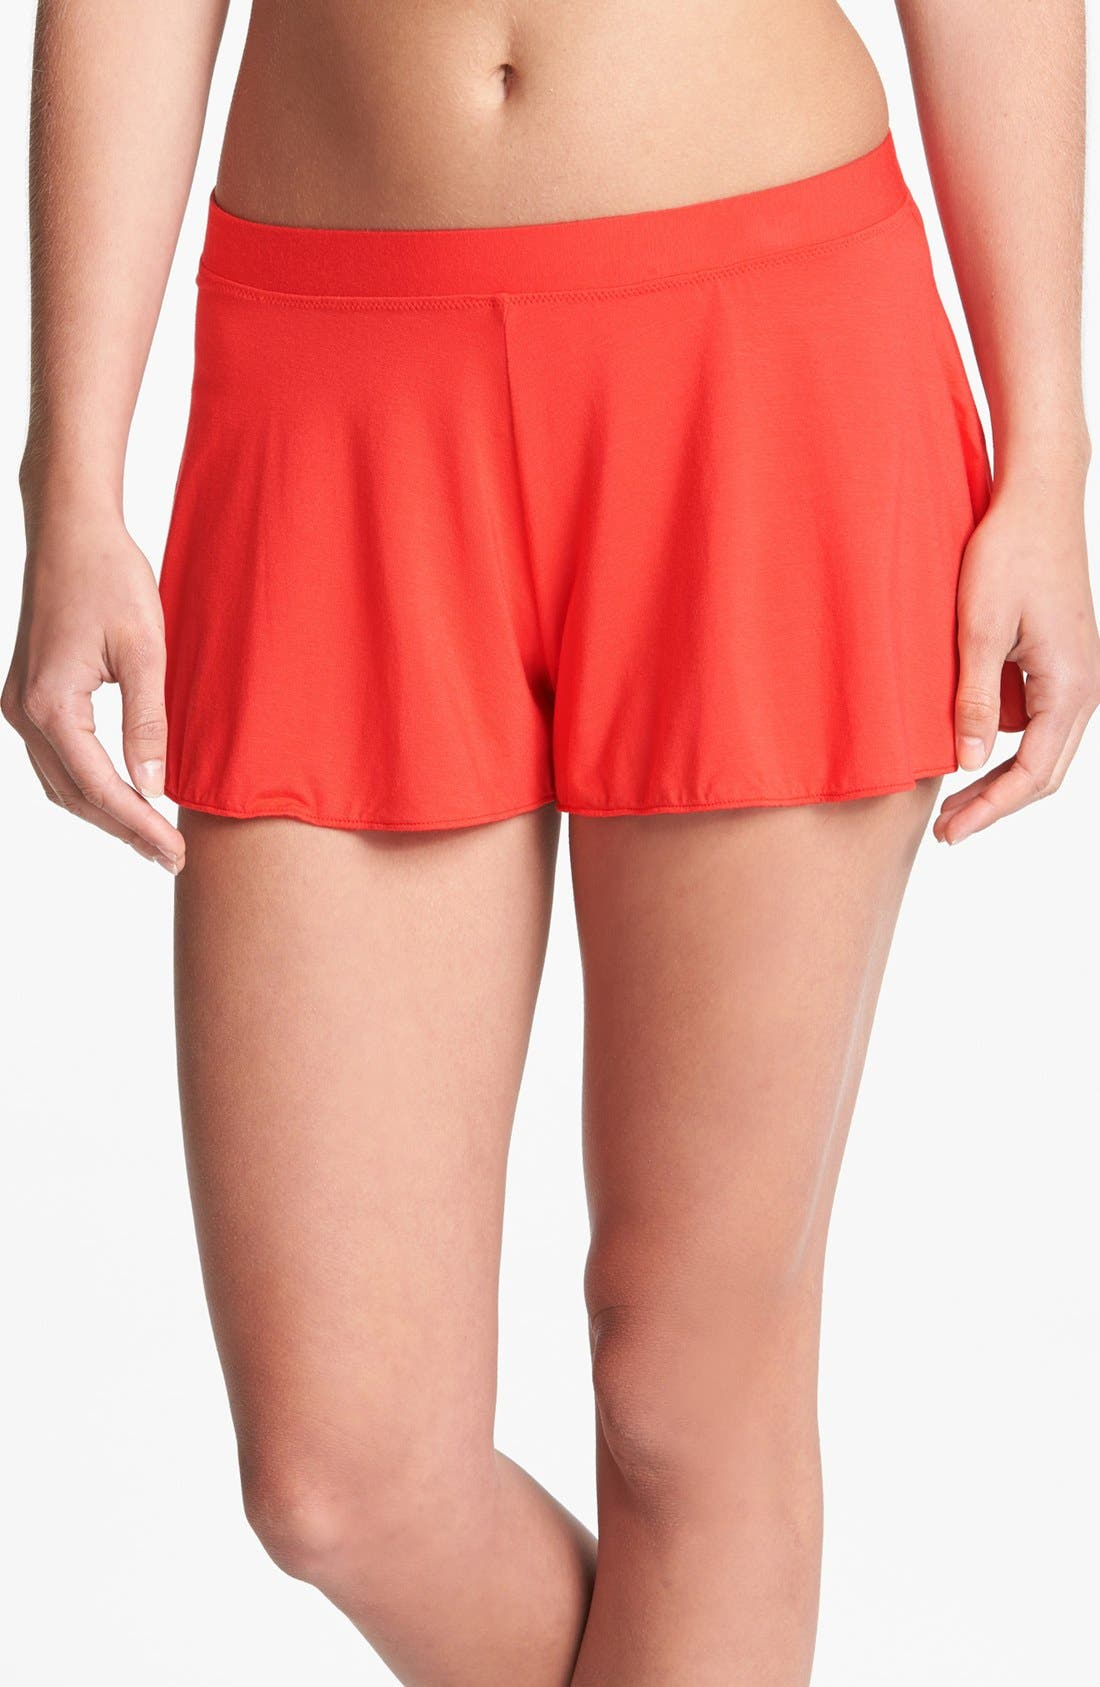 Alternate Image 1 Selected - Splendid Drapey Knit Shorts